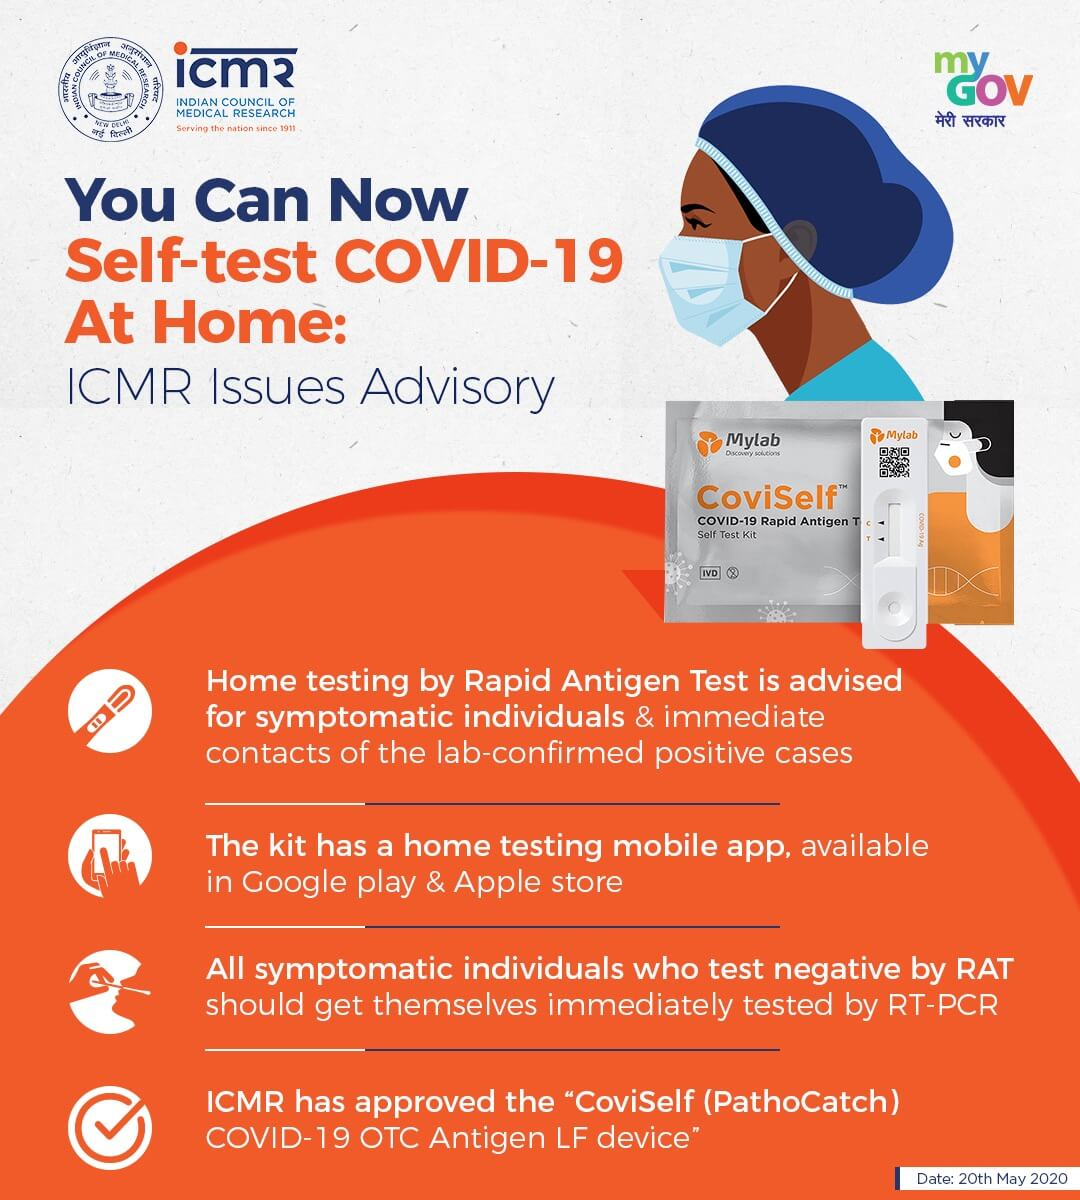 ICMR Advisory For Covid19 Self -Test At Home